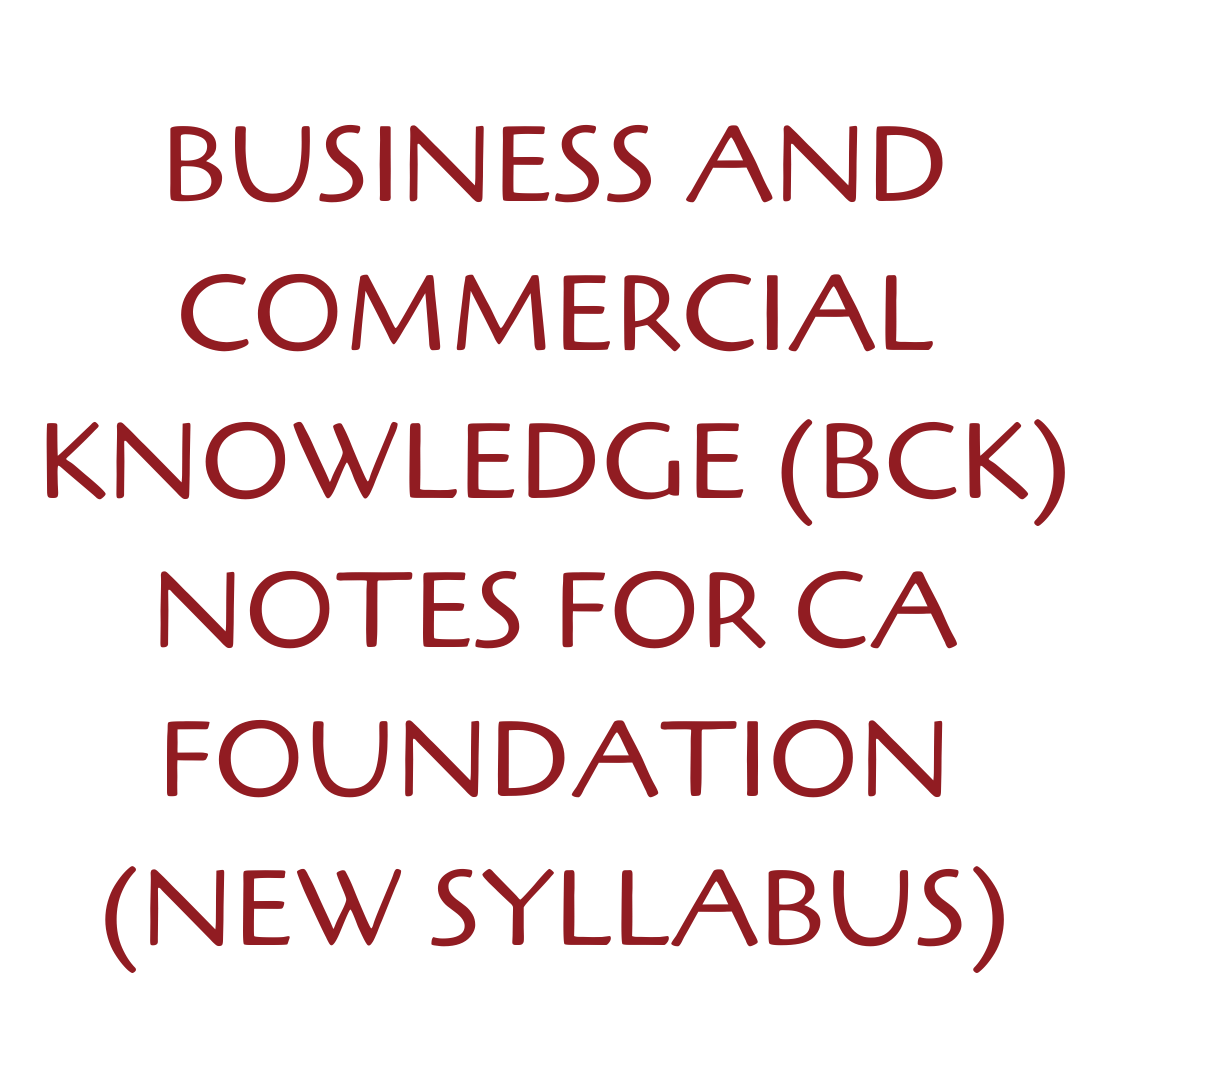 Business and Commercial Knowledge